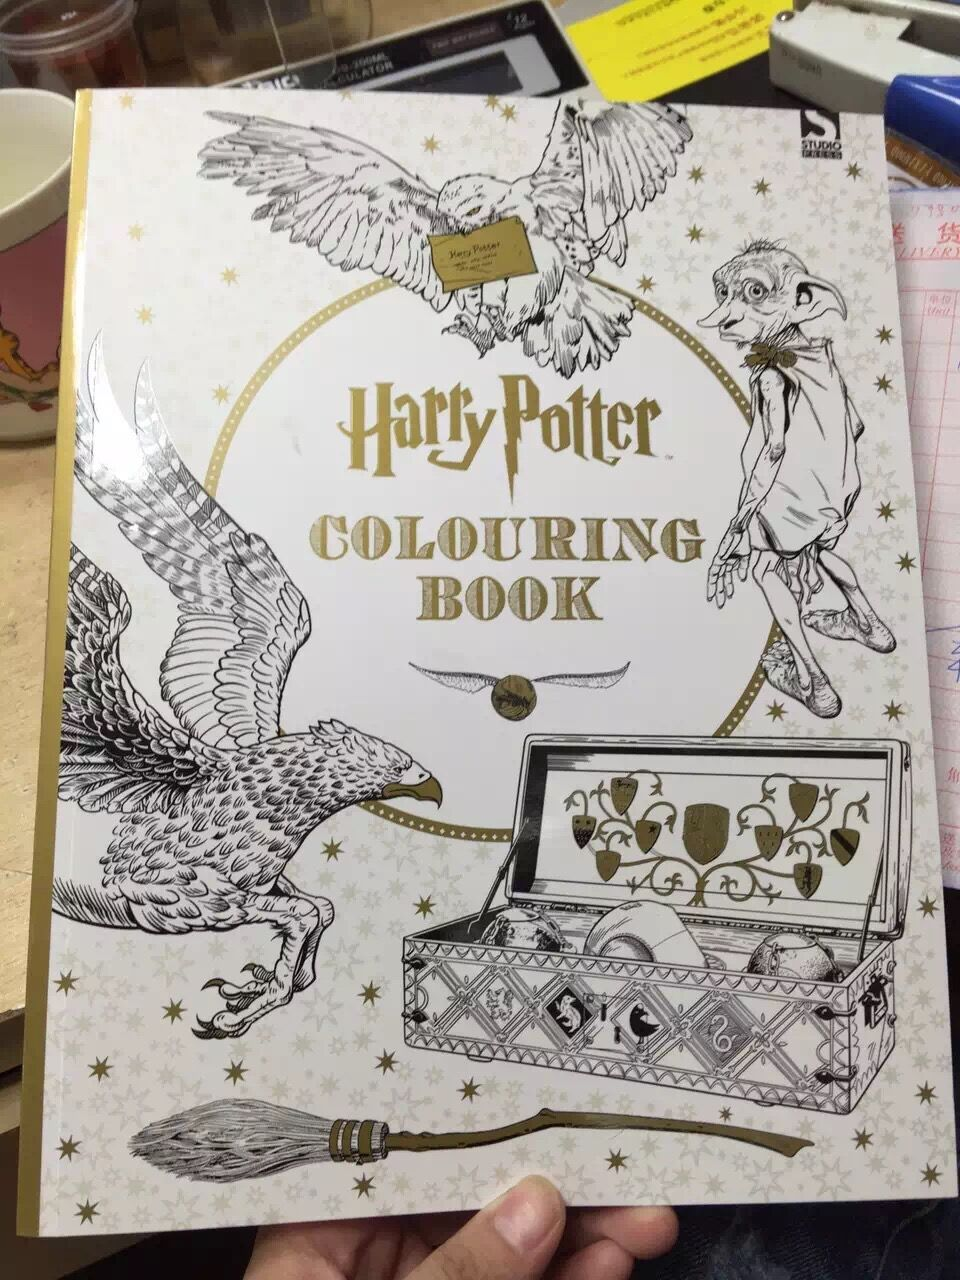 Harry Potter Coloring Book Books For Children Adult Secret Garden Series Kill Time Painting Drawing